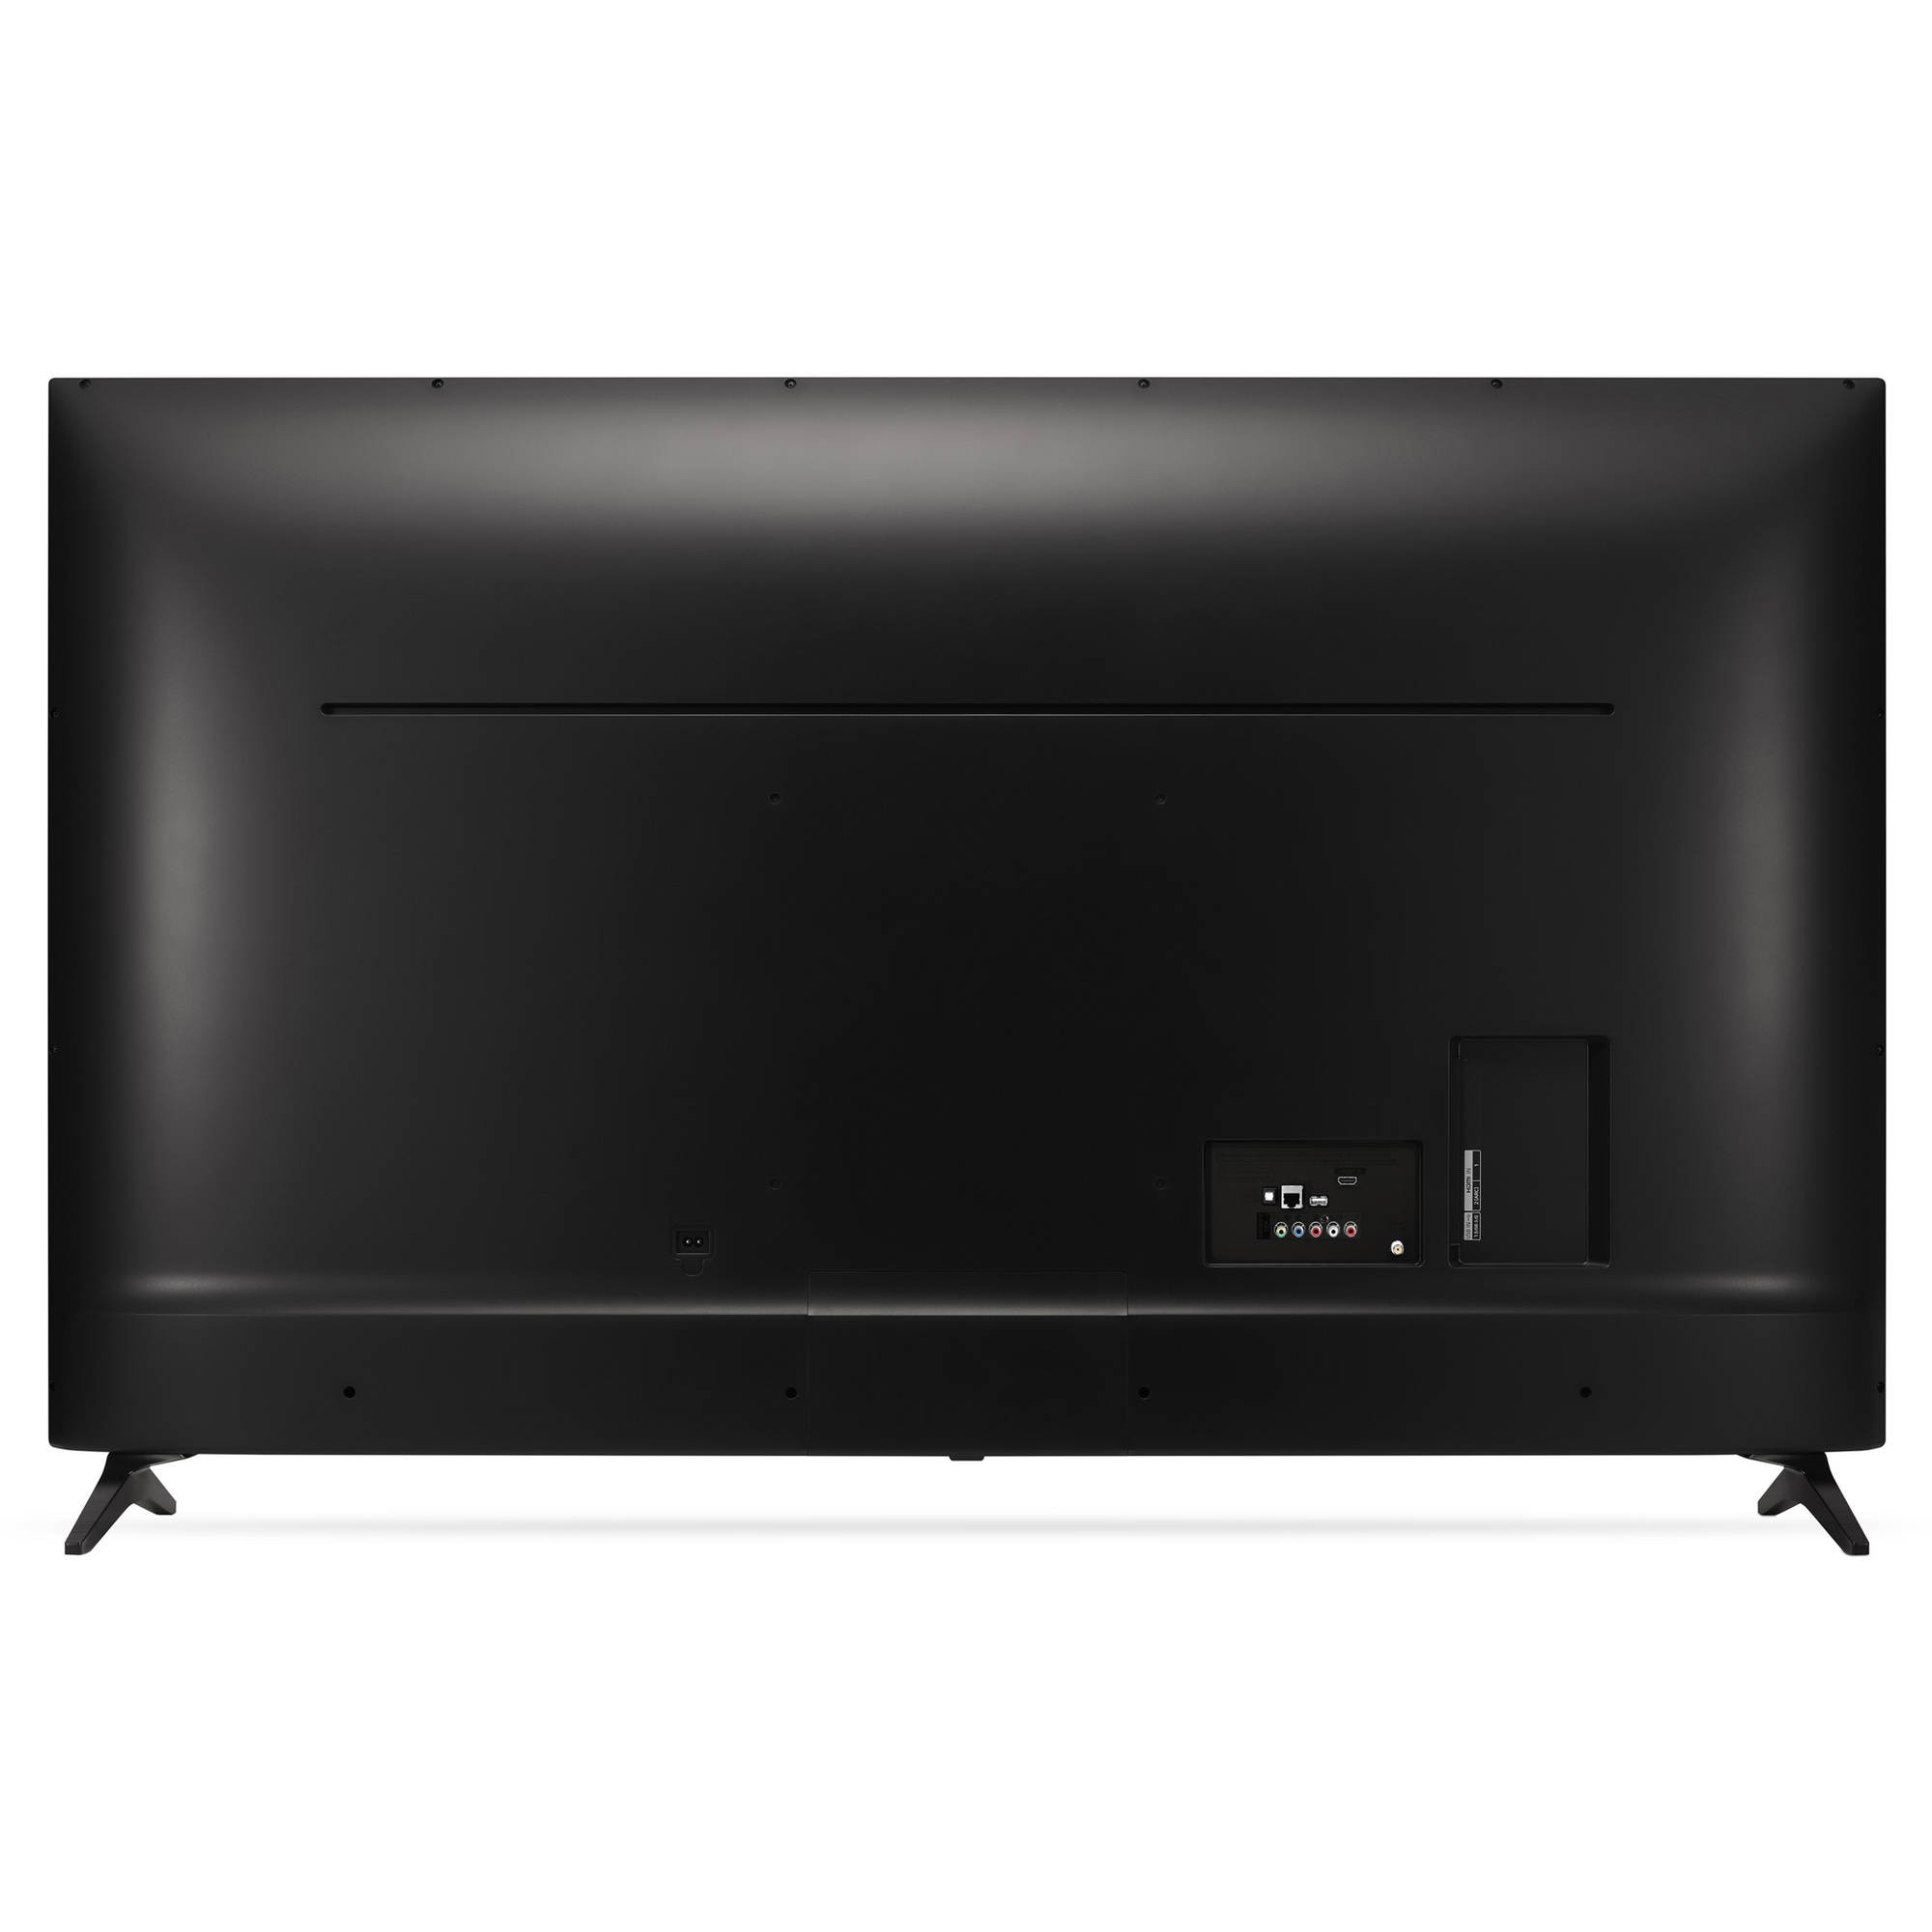 "Tv Lg 43 4k Contemporáneo Lg 43"" Class Uj6300 Series 4k Ultra Hd Smart Led Tv Of 36  Único Tv Lg 43 4k"